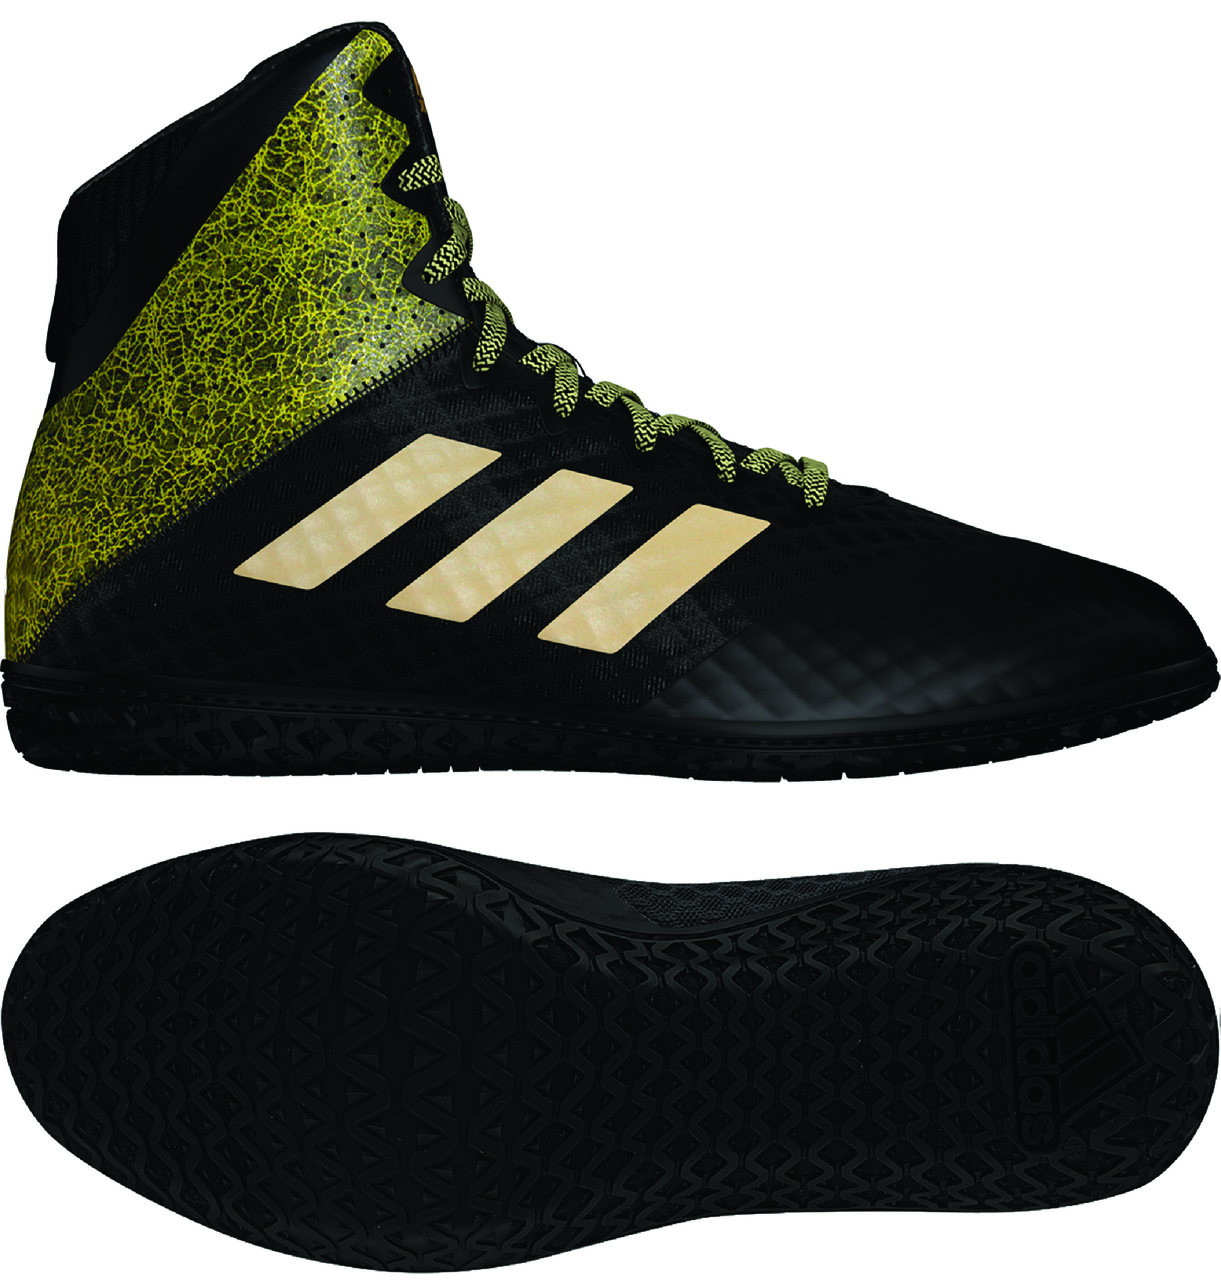 NEW! adidas Mat Wizard Hype Wrestling Shoes, color: Black/Gold